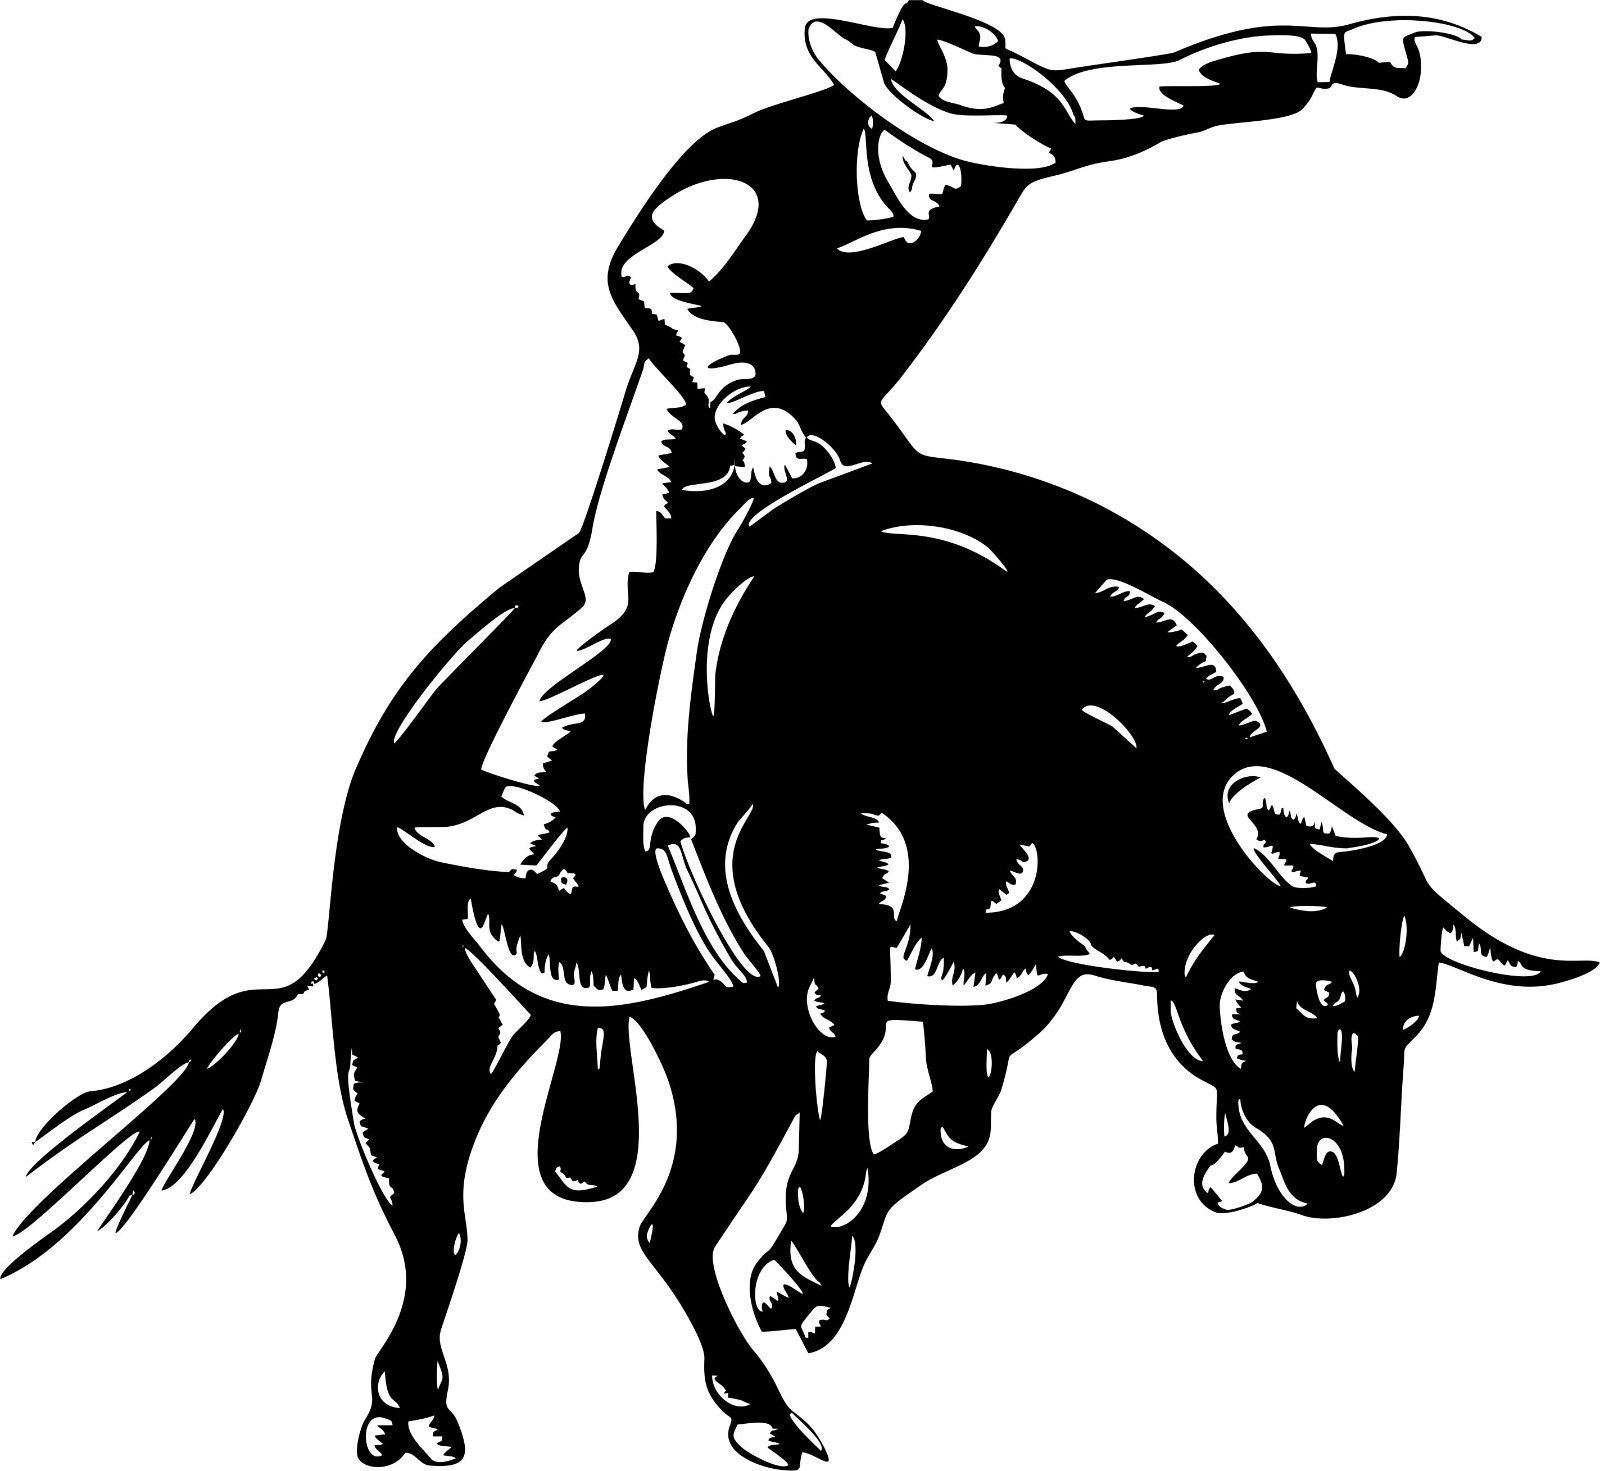 Details About Bull Riding Rodeo Cowboy Sports PBR Car